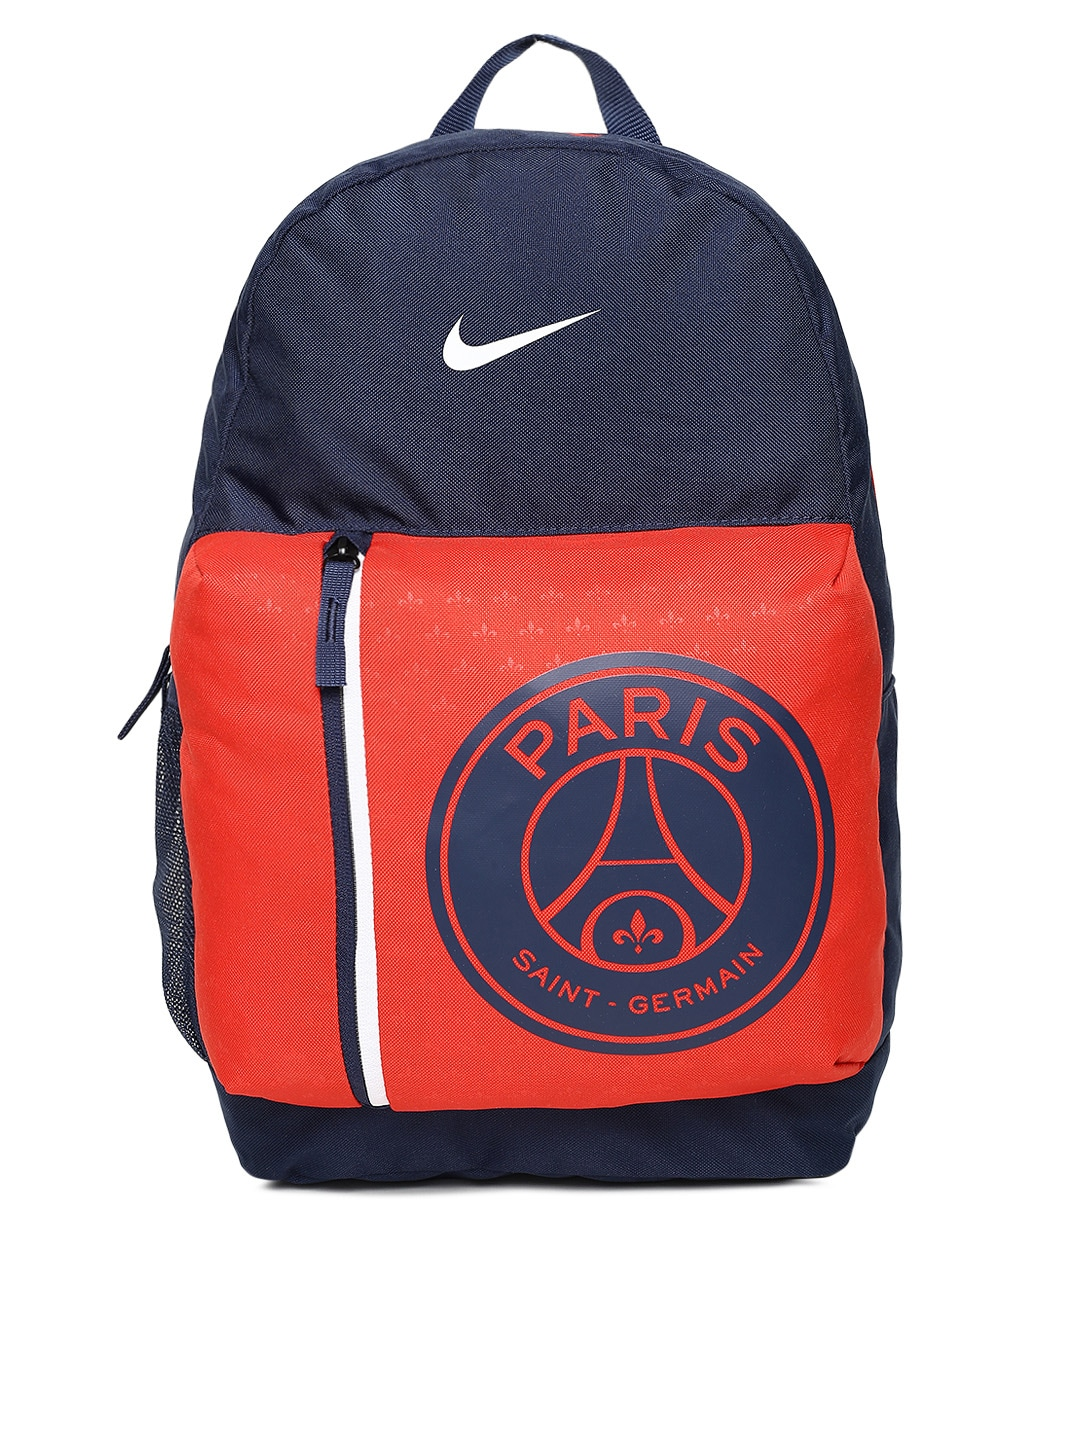 d677225643 Nike Men Football Backpacks - Buy Nike Men Football Backpacks online in  India